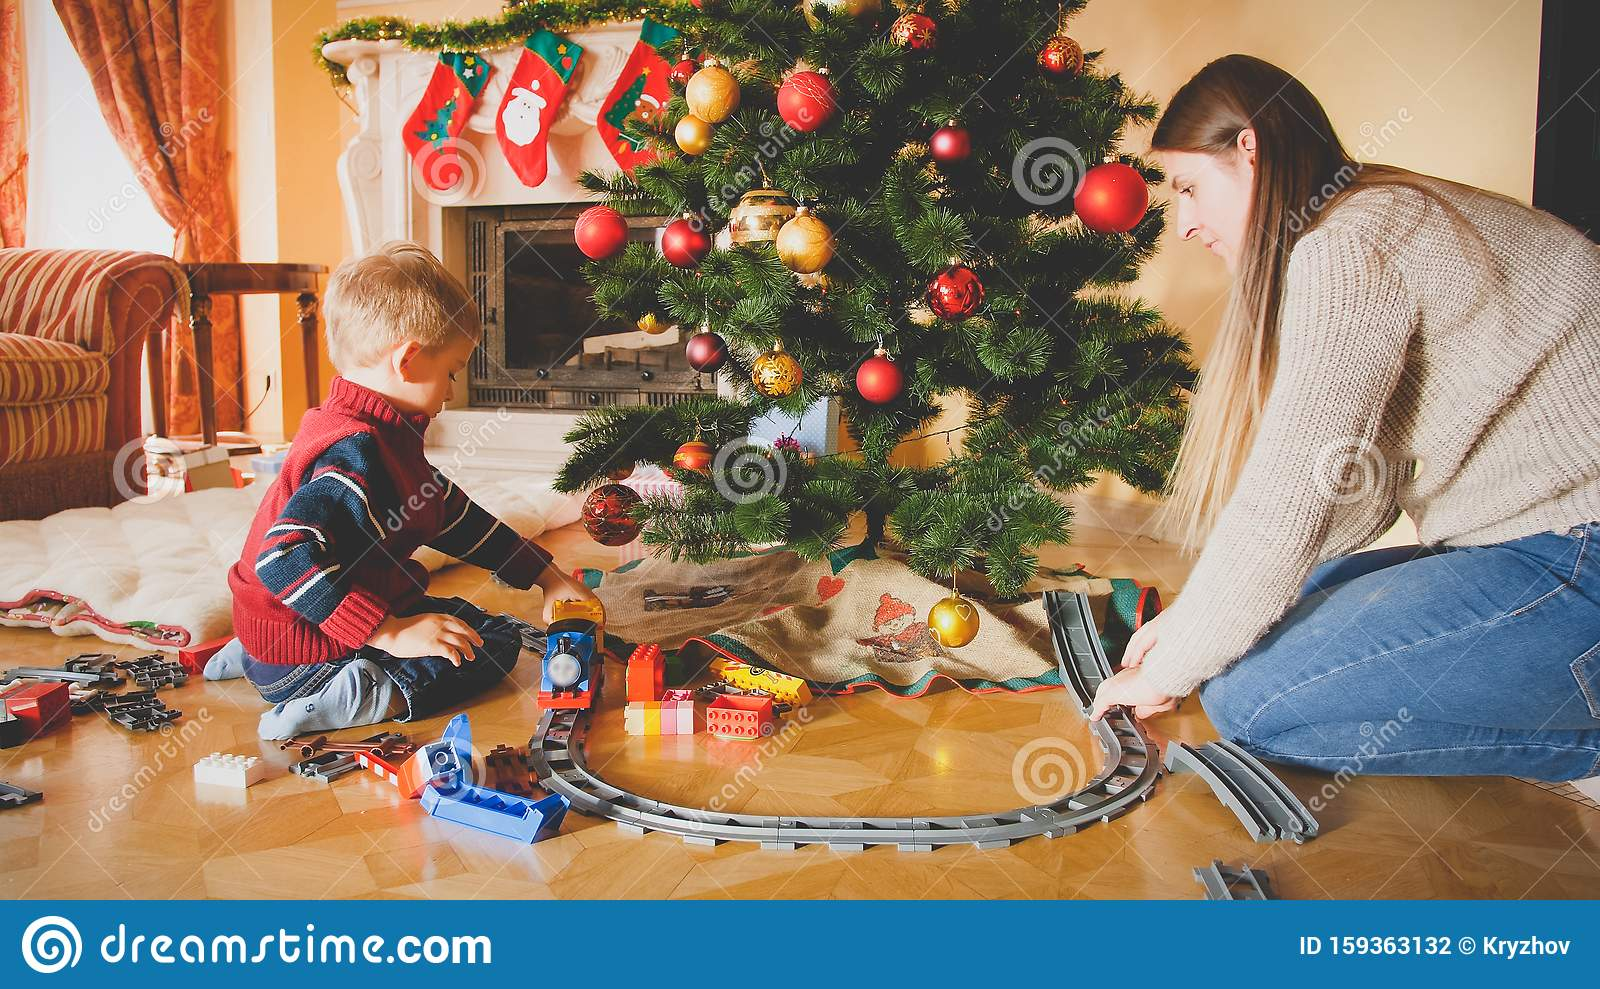 Toned Photo Of Family Playing With Toy Railroad On Floor At Living Room On Christmas Morning ...